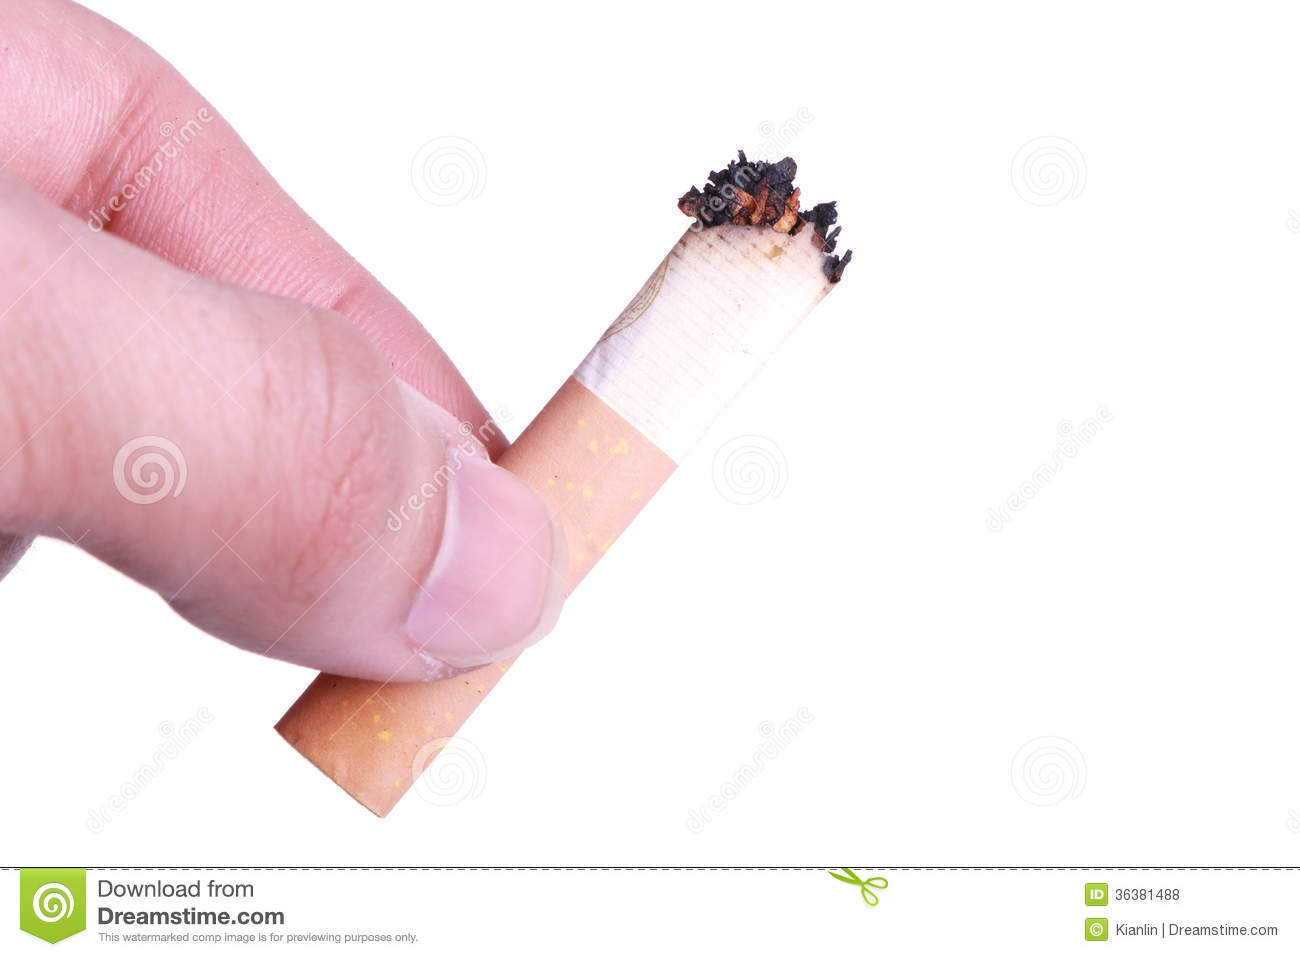 cigarette fetish porn thumbs